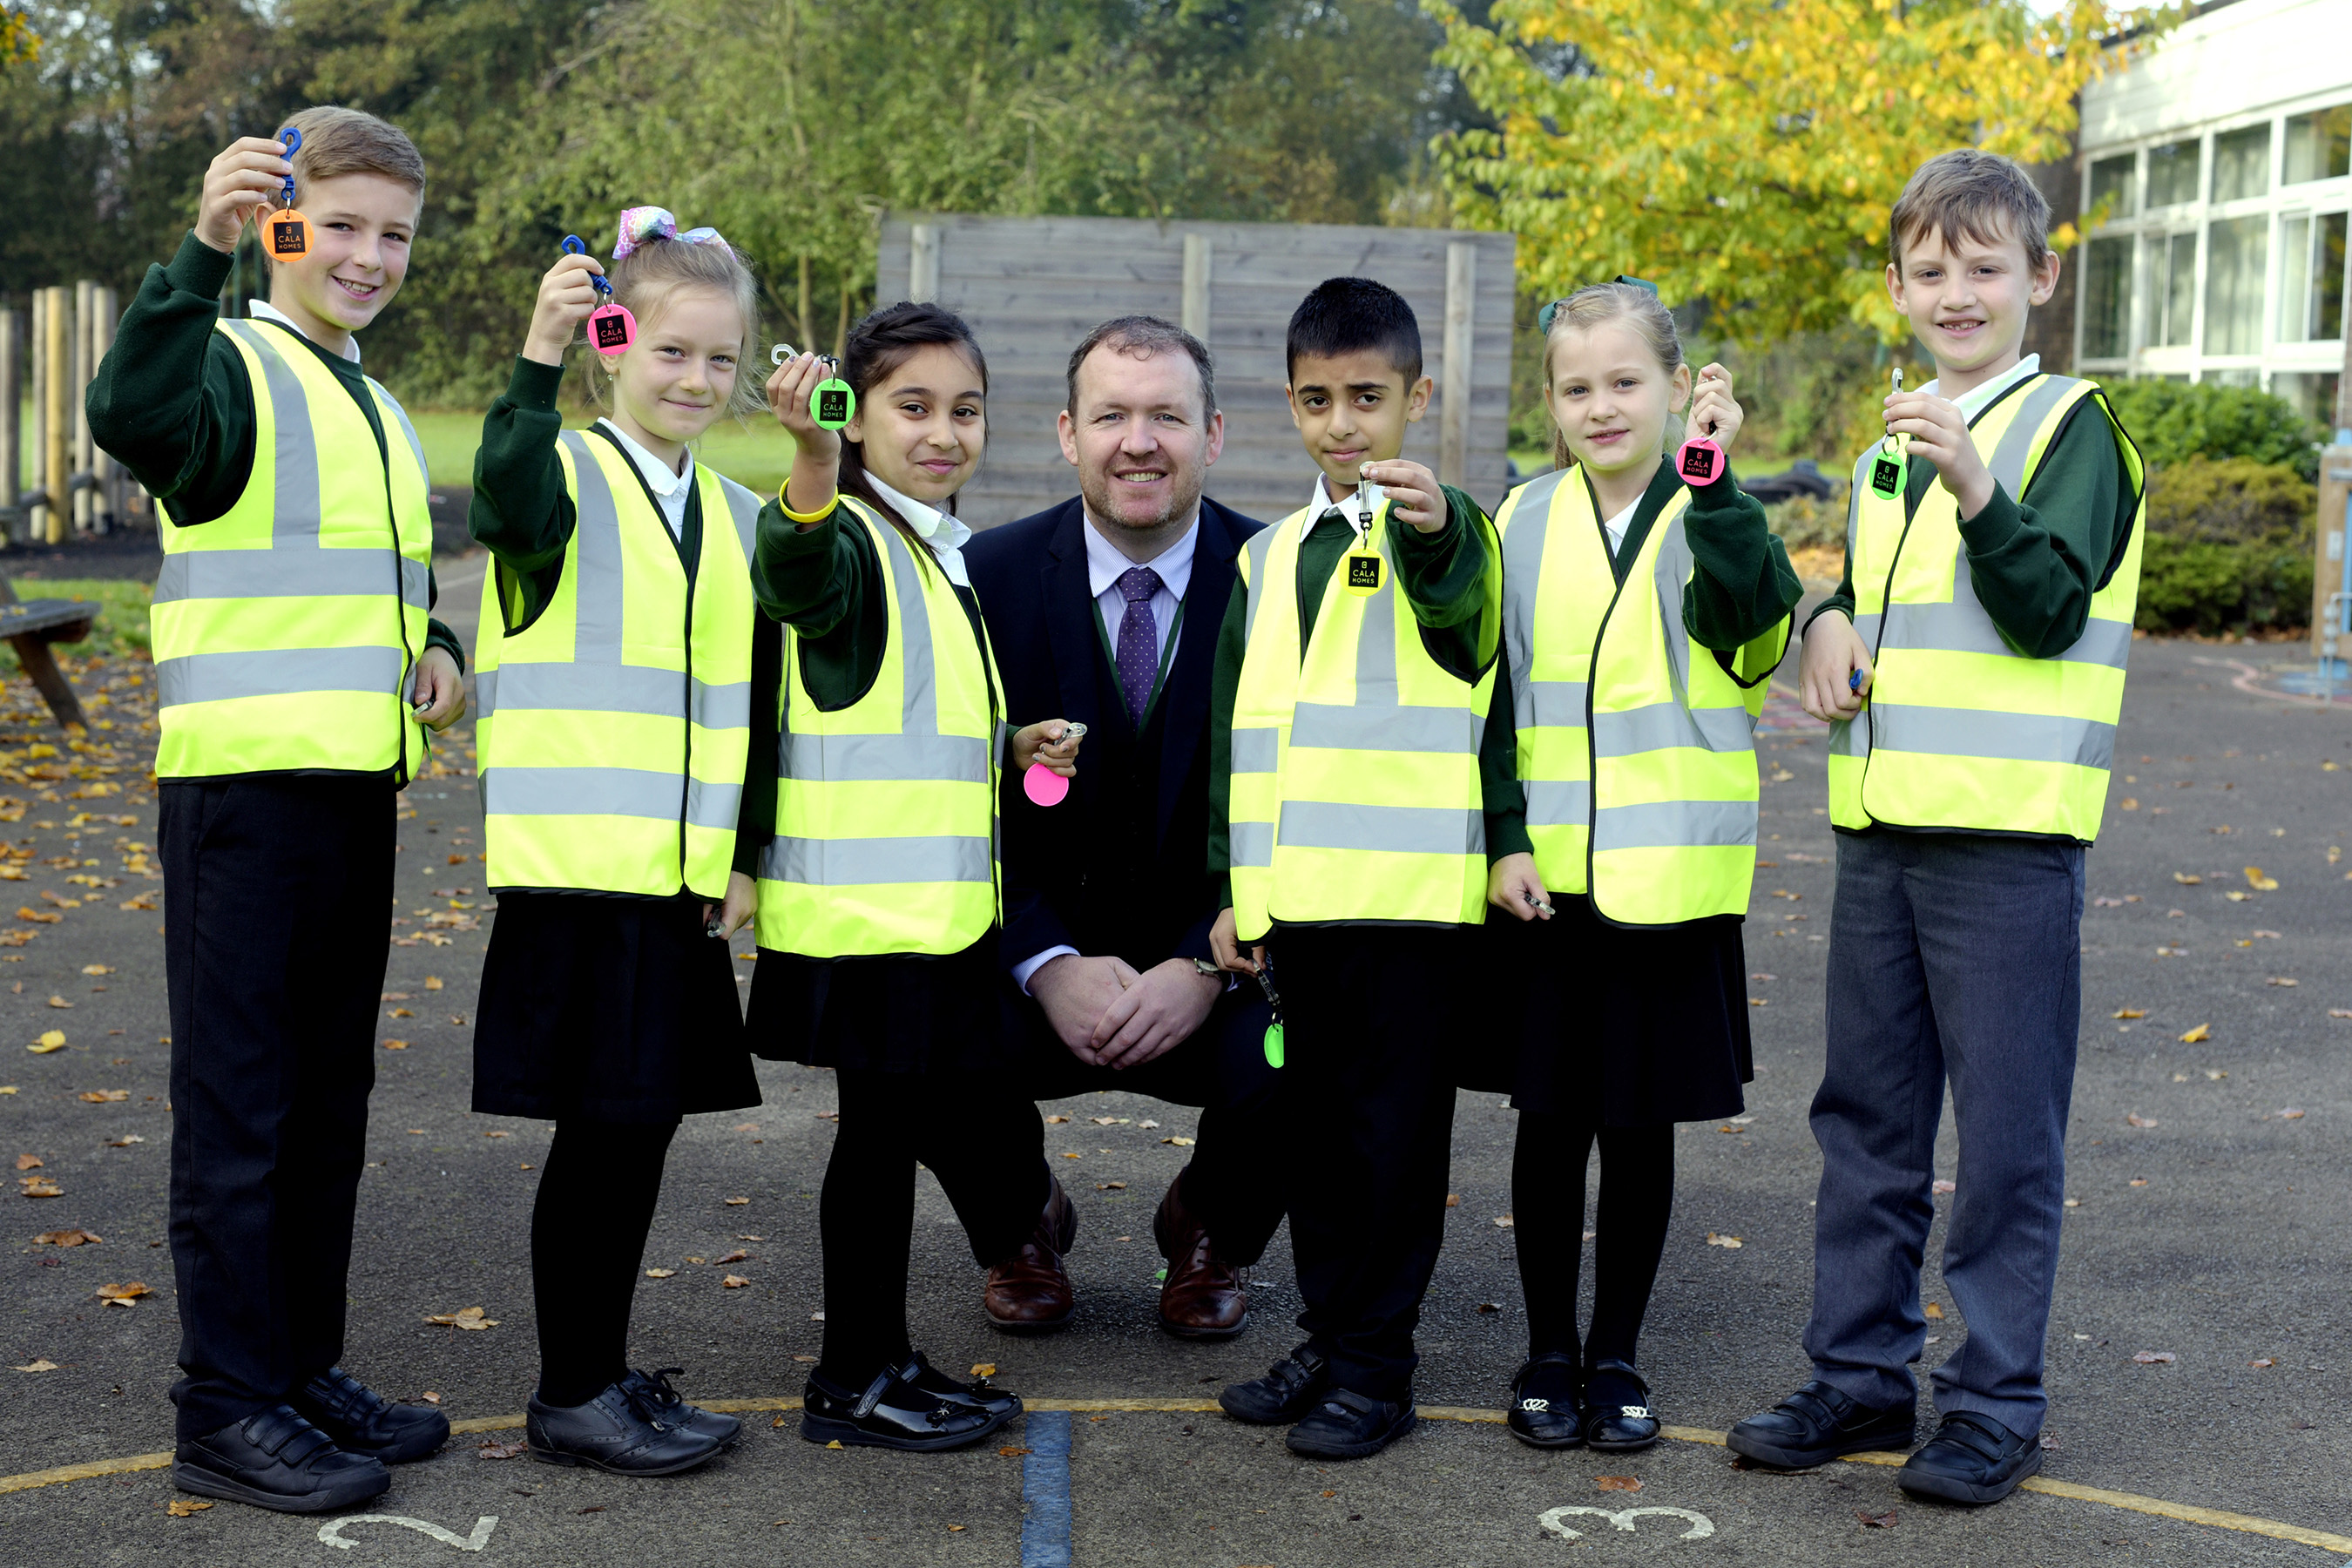 Children from Highwood Primary School in Reading wearing Hi-Viz clothing